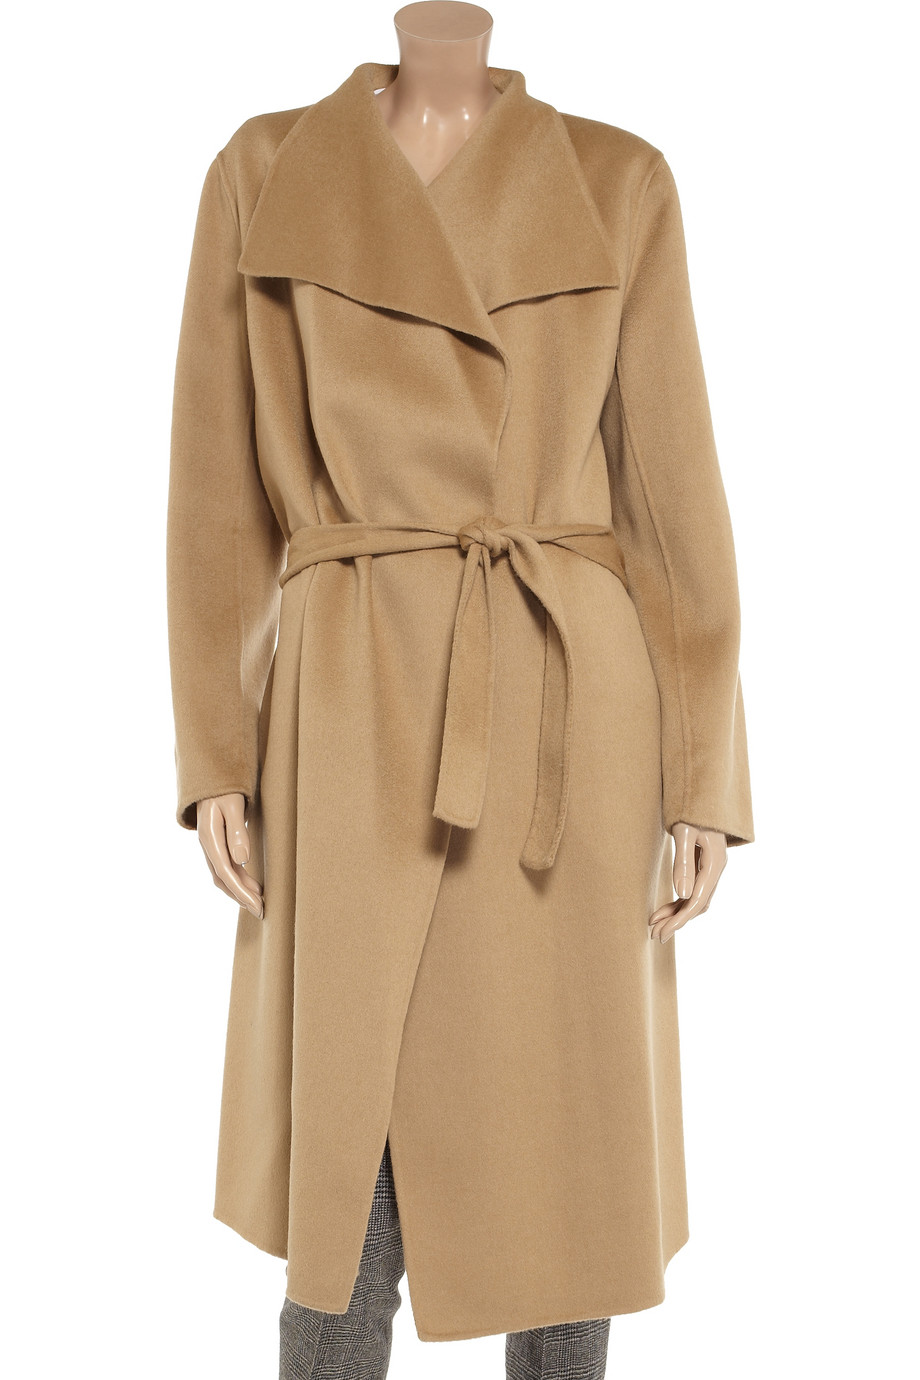 Joseph Lisa Belted Wool and Cashmereblend Coat in Natural | Lyst